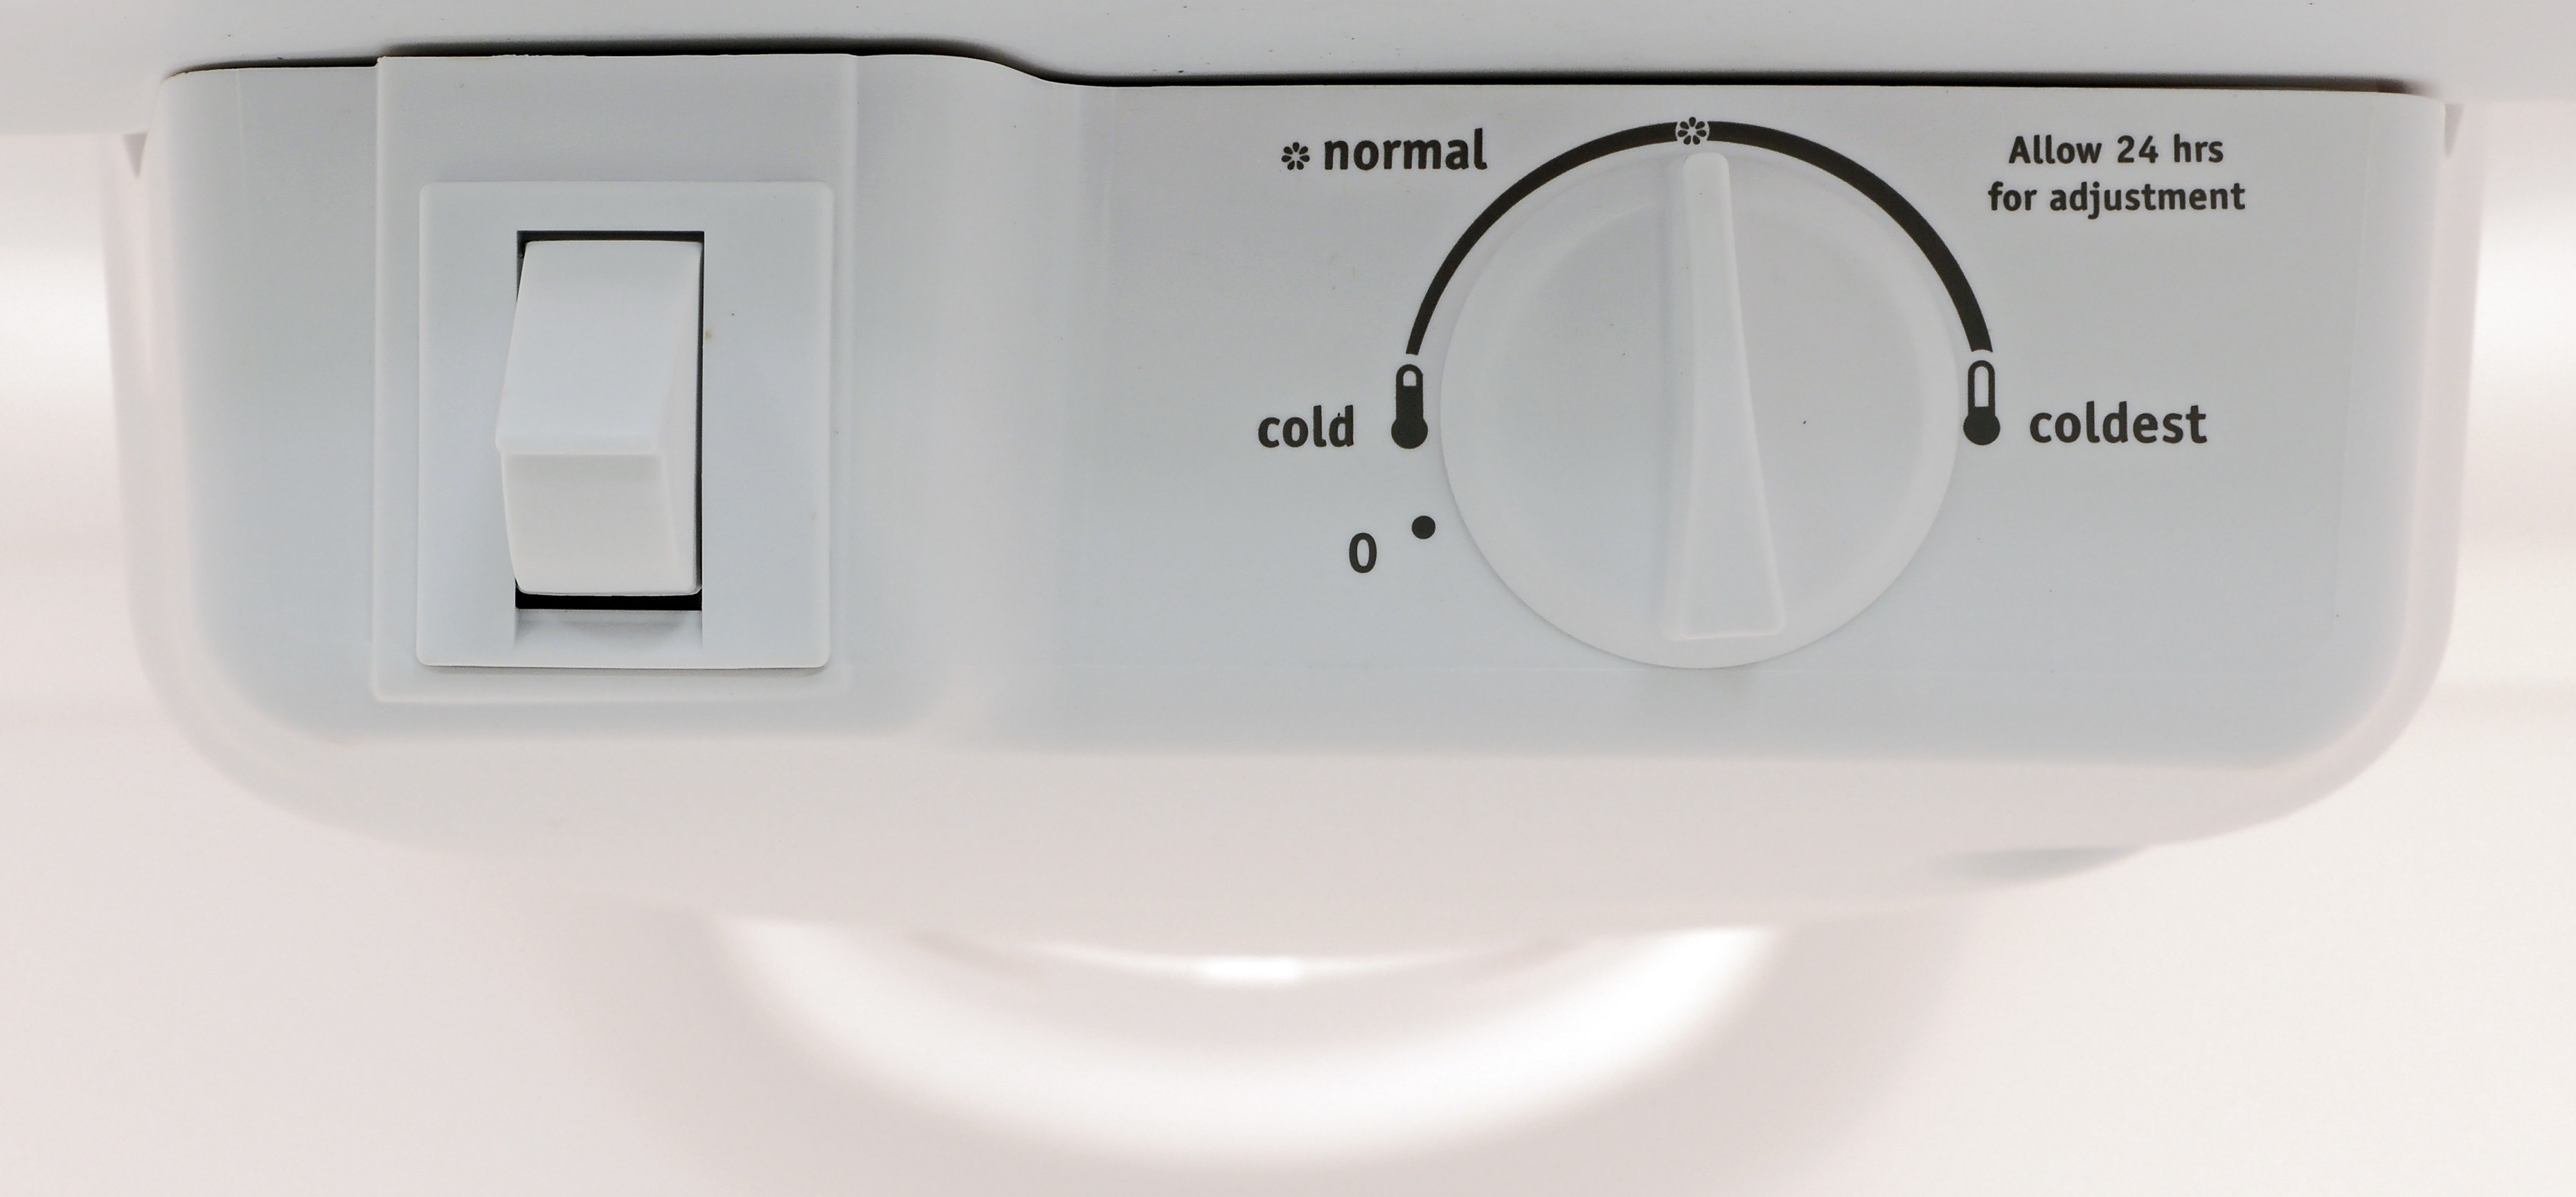 Don't believe the controls: Turn the Frigidaire FFTR1814QW's dial past the recommended setting for optimal performance.